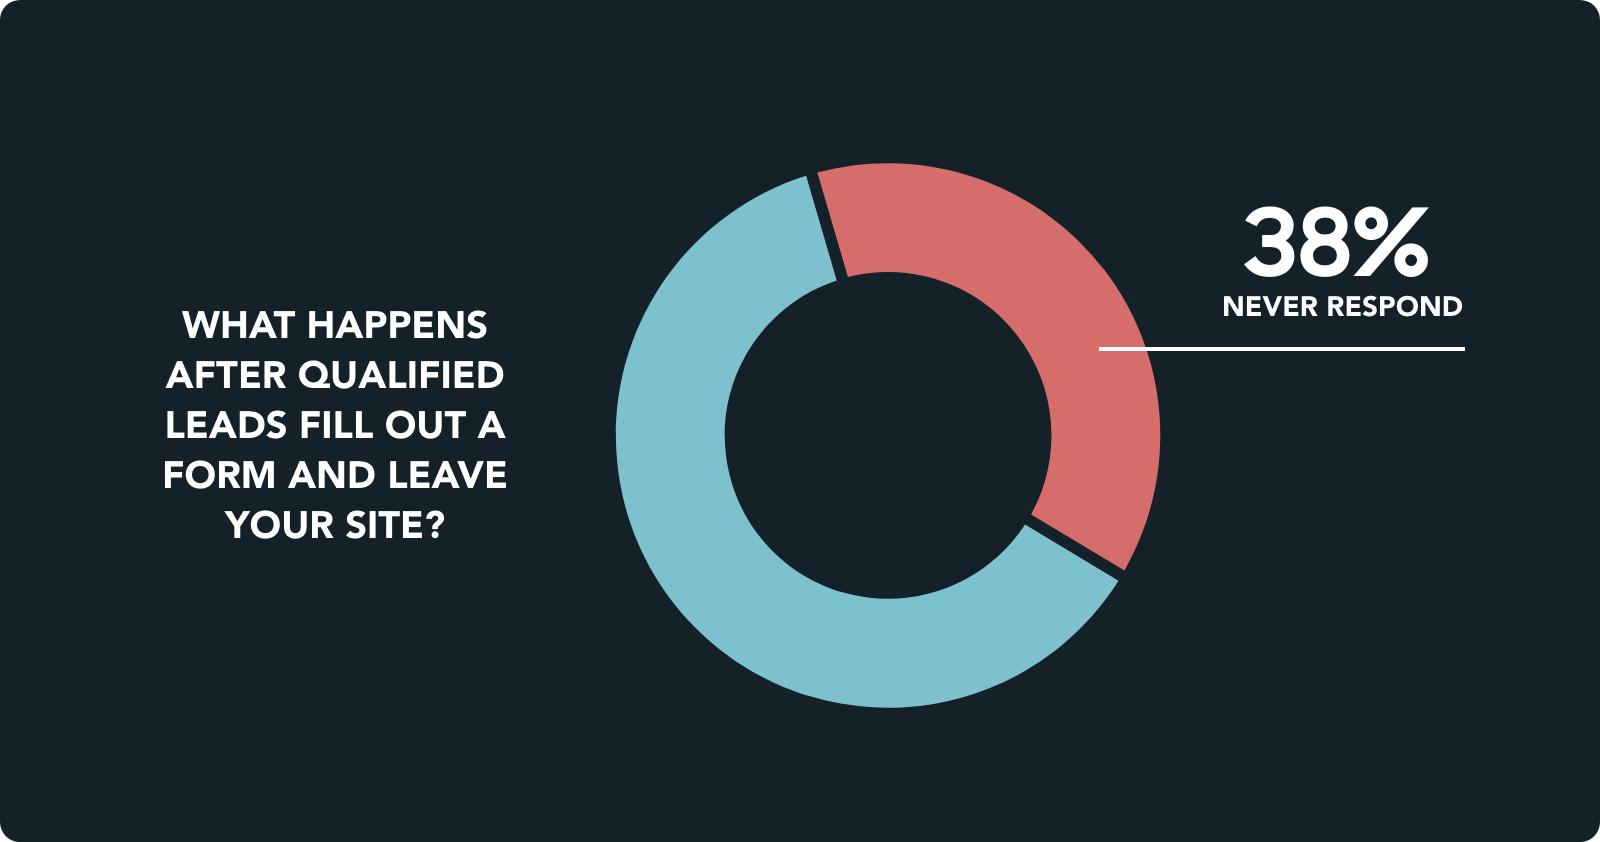 38% of qualified leads never respond after they fill out a form on your website